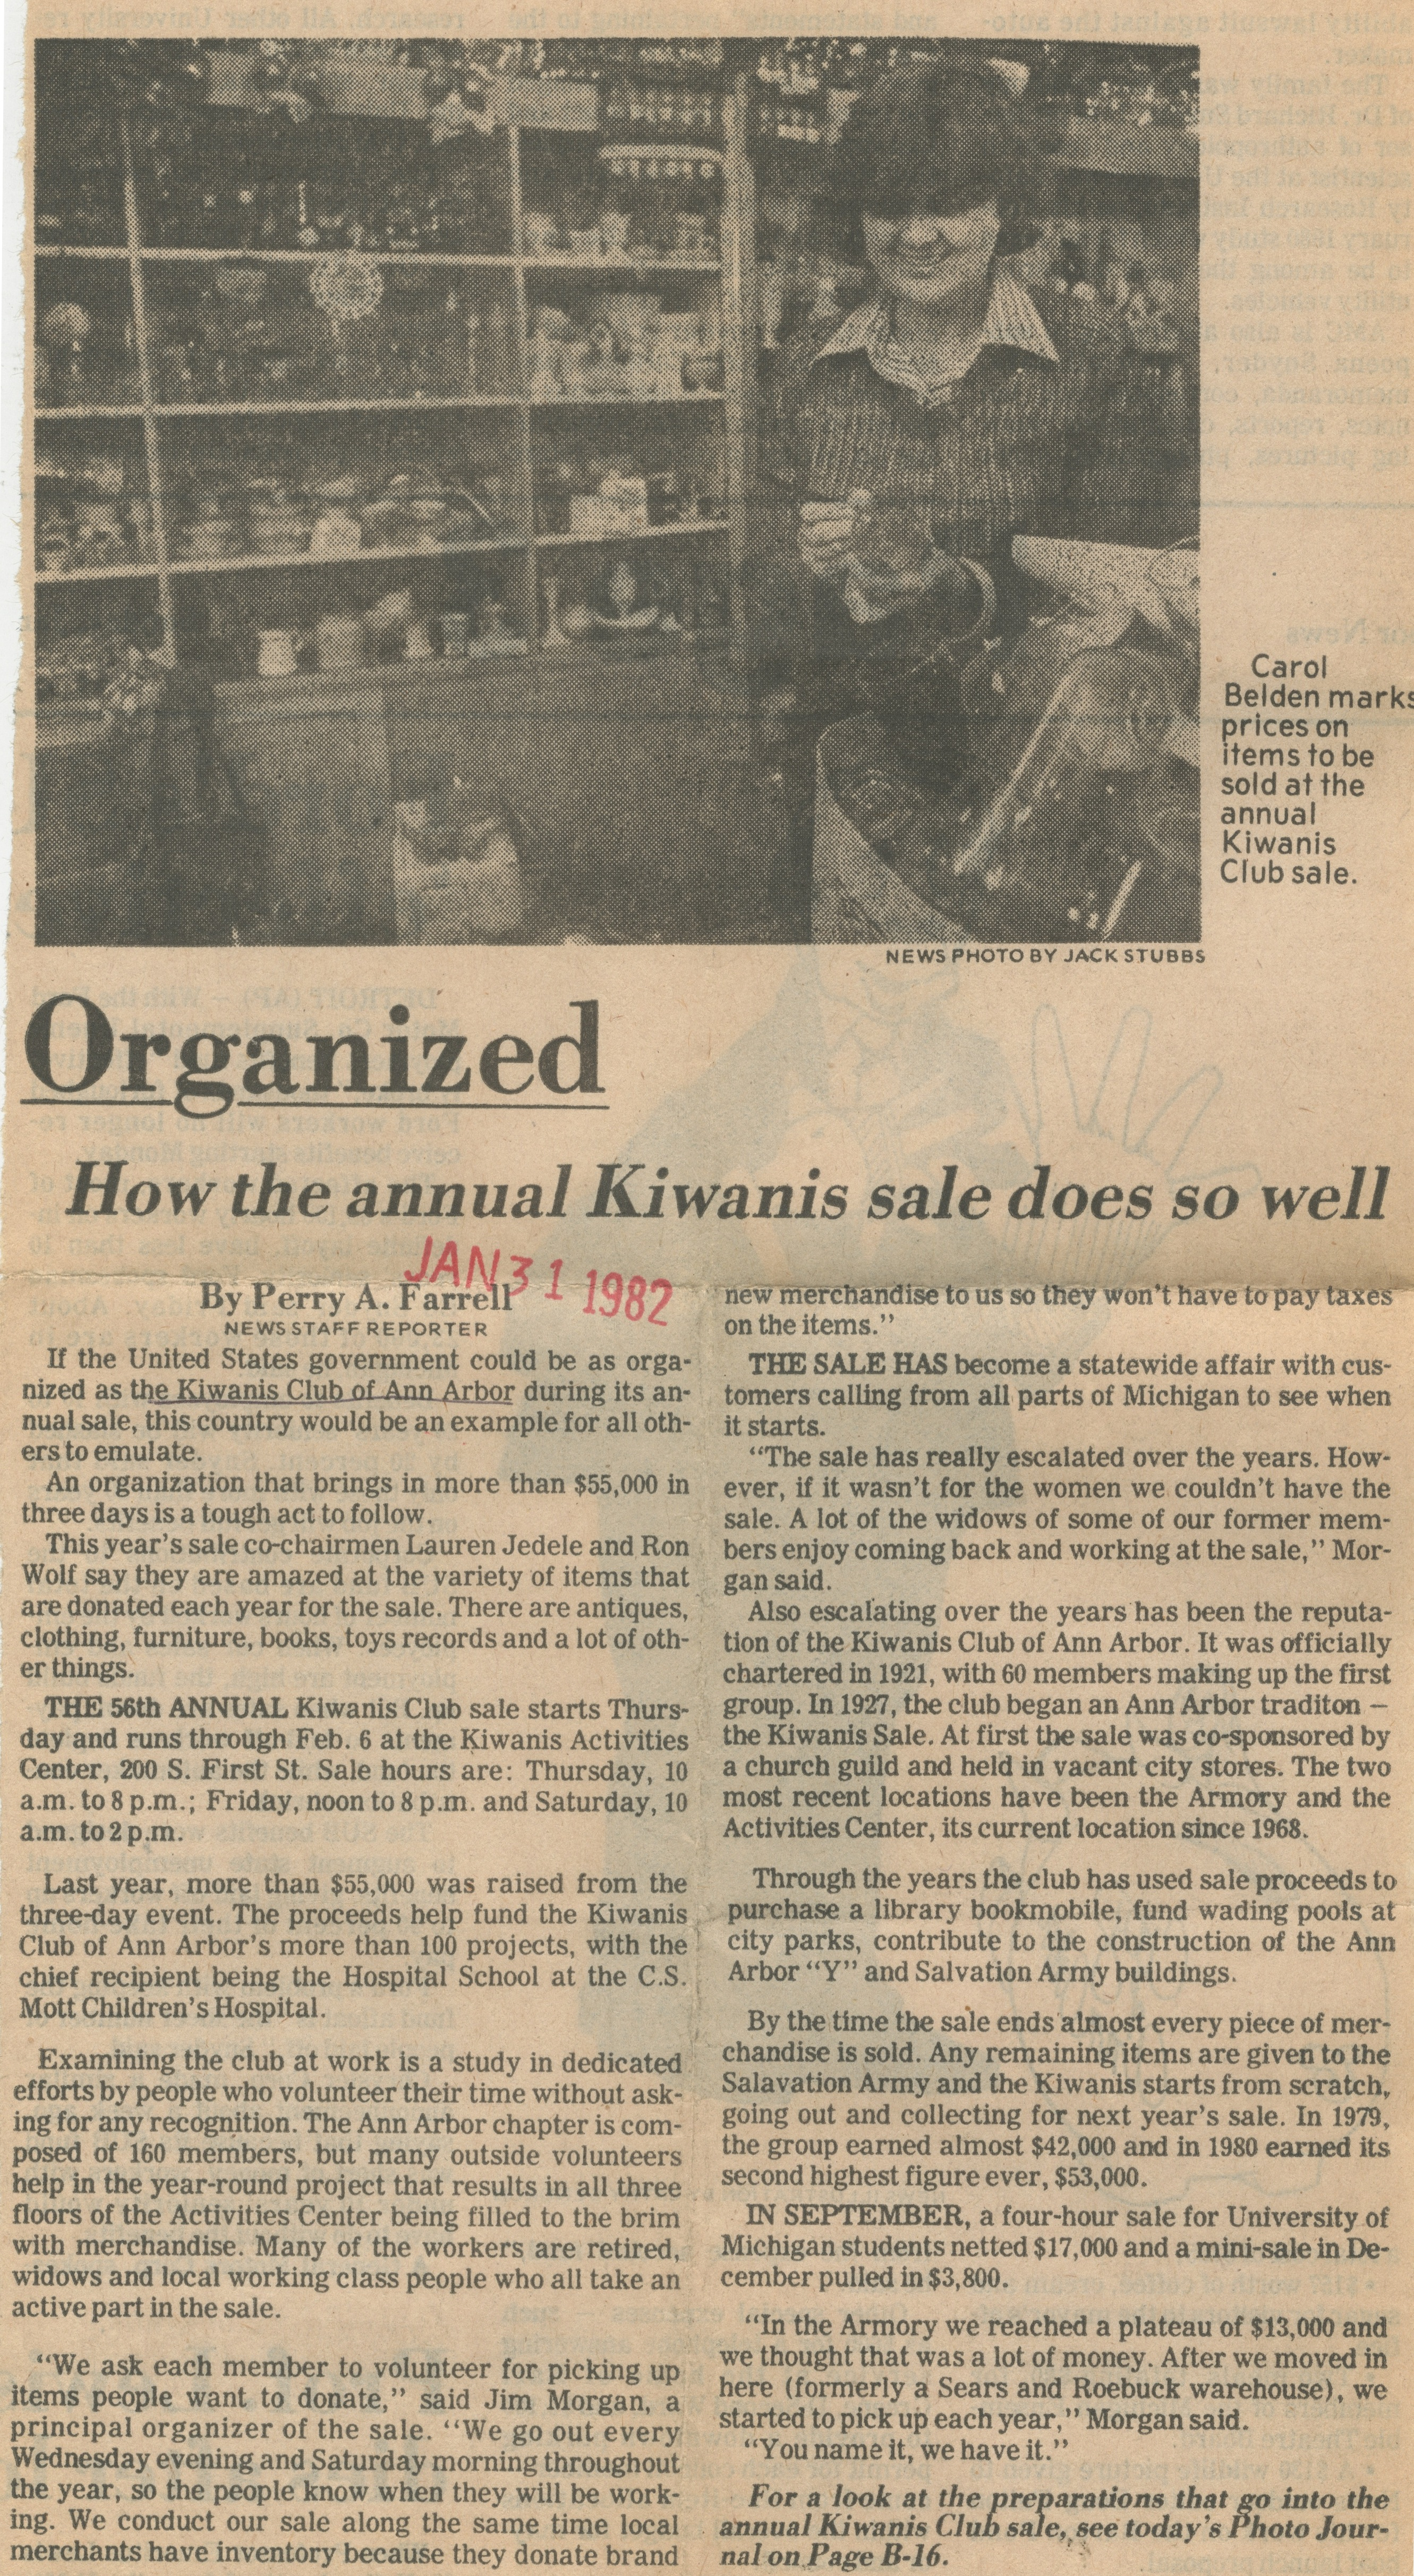 Organized ~ How The Annual Kiwanis Sale Does So Well image